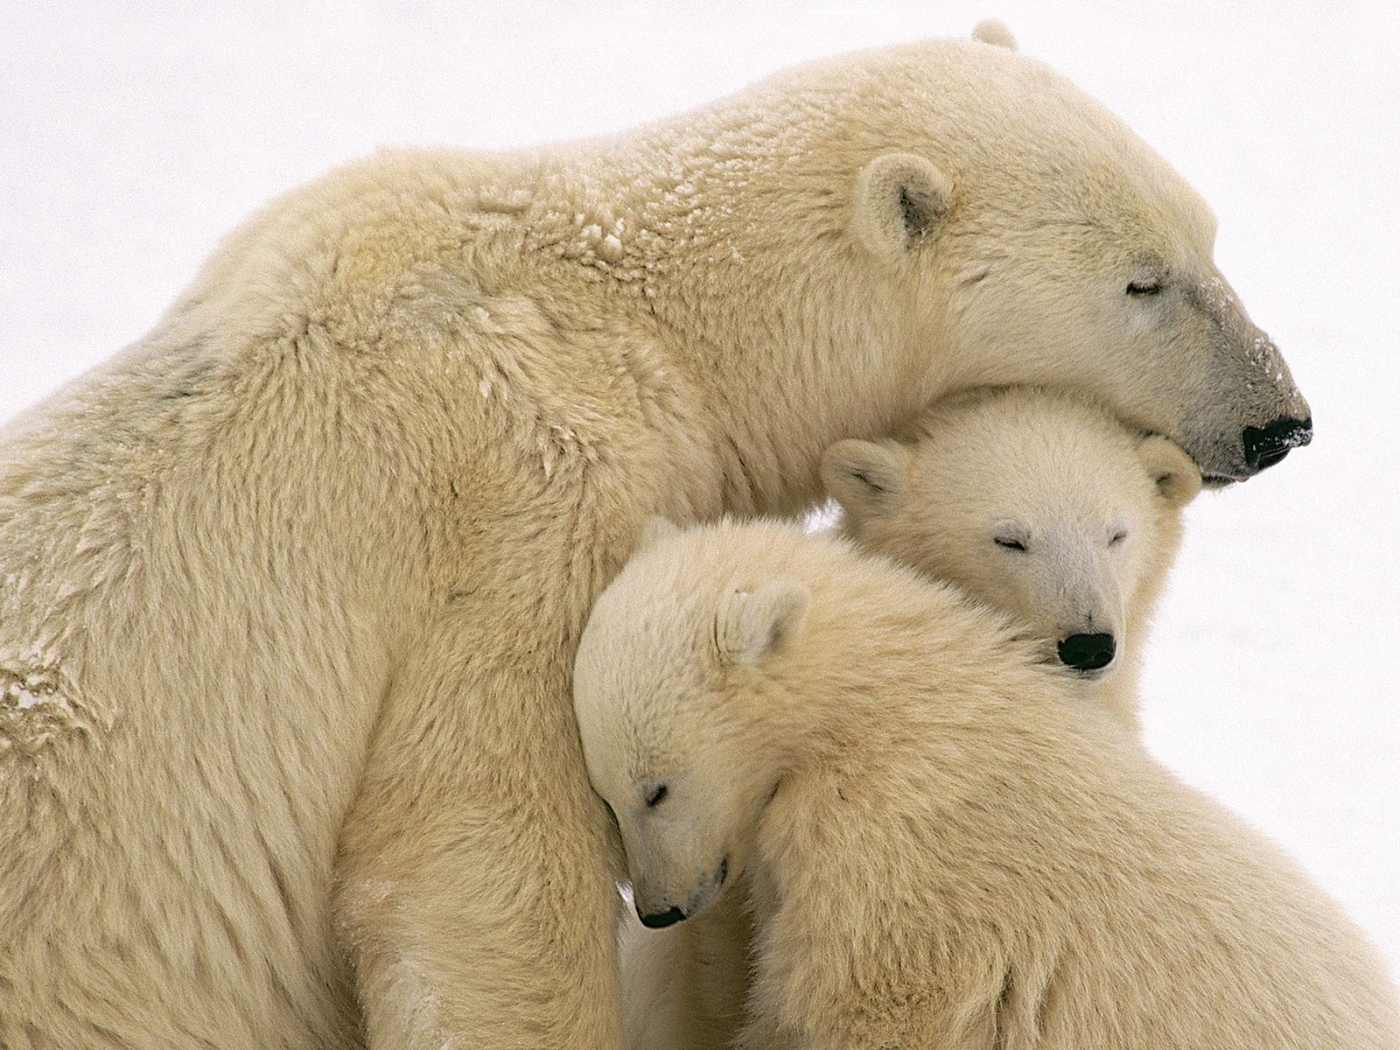 34370 download wallpaper Animals, Bears screensavers and pictures for free